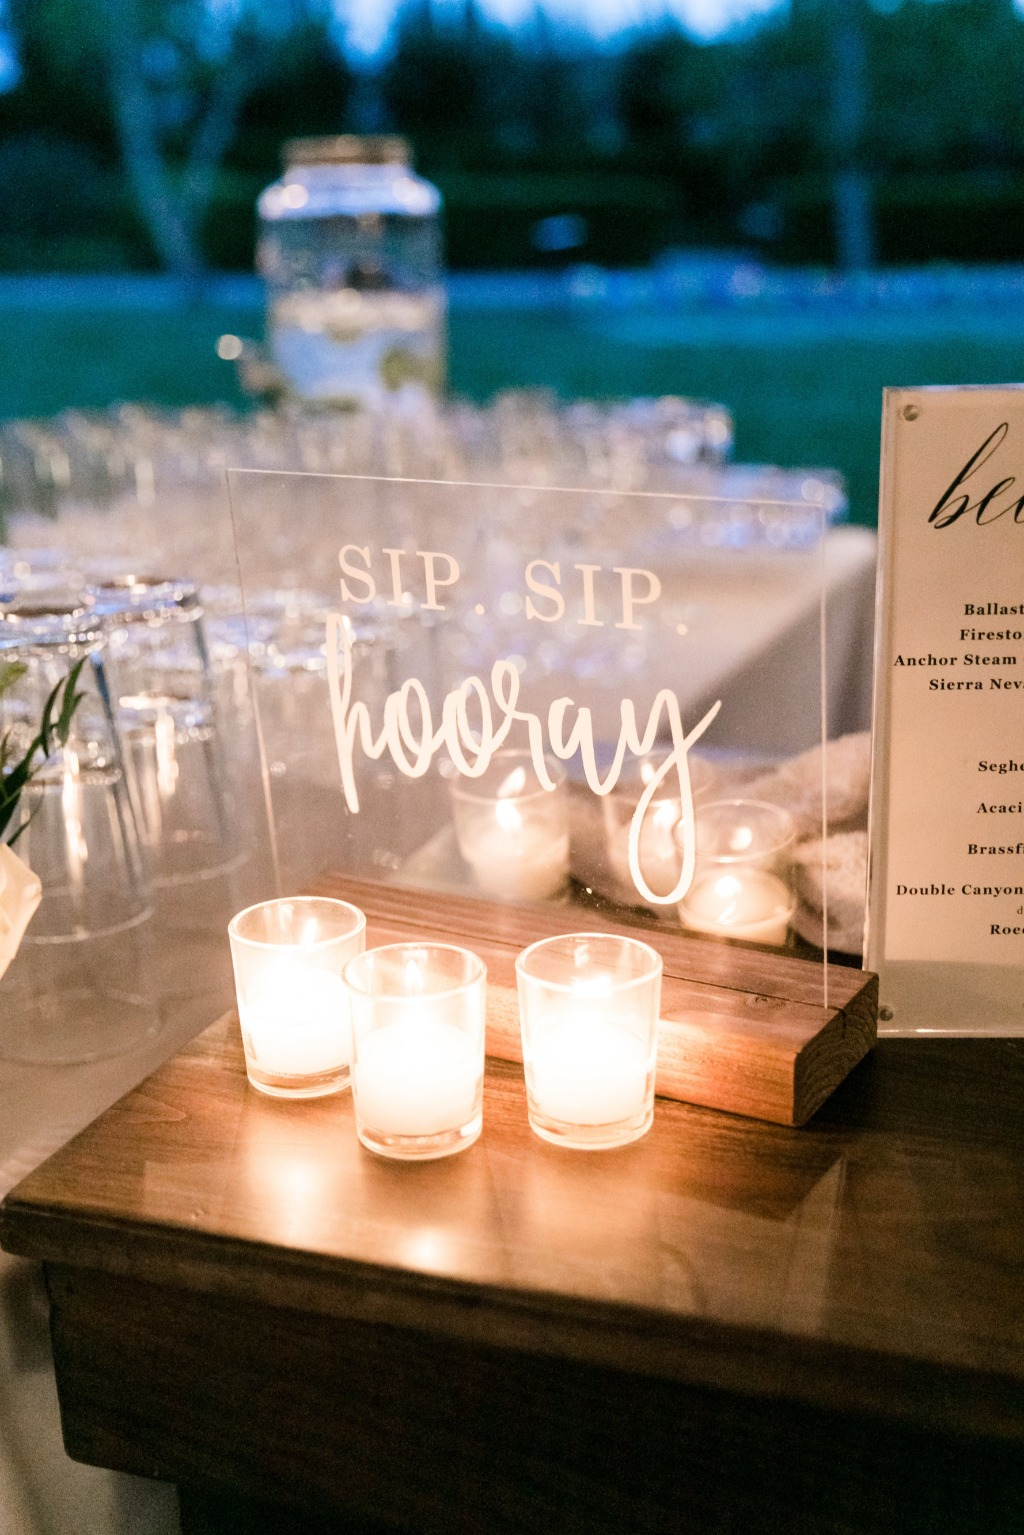 Encourage cheers of celebration from all your guests with our Sip, Sip, Hooray clear acrylic sign. This sign adds the perfect little